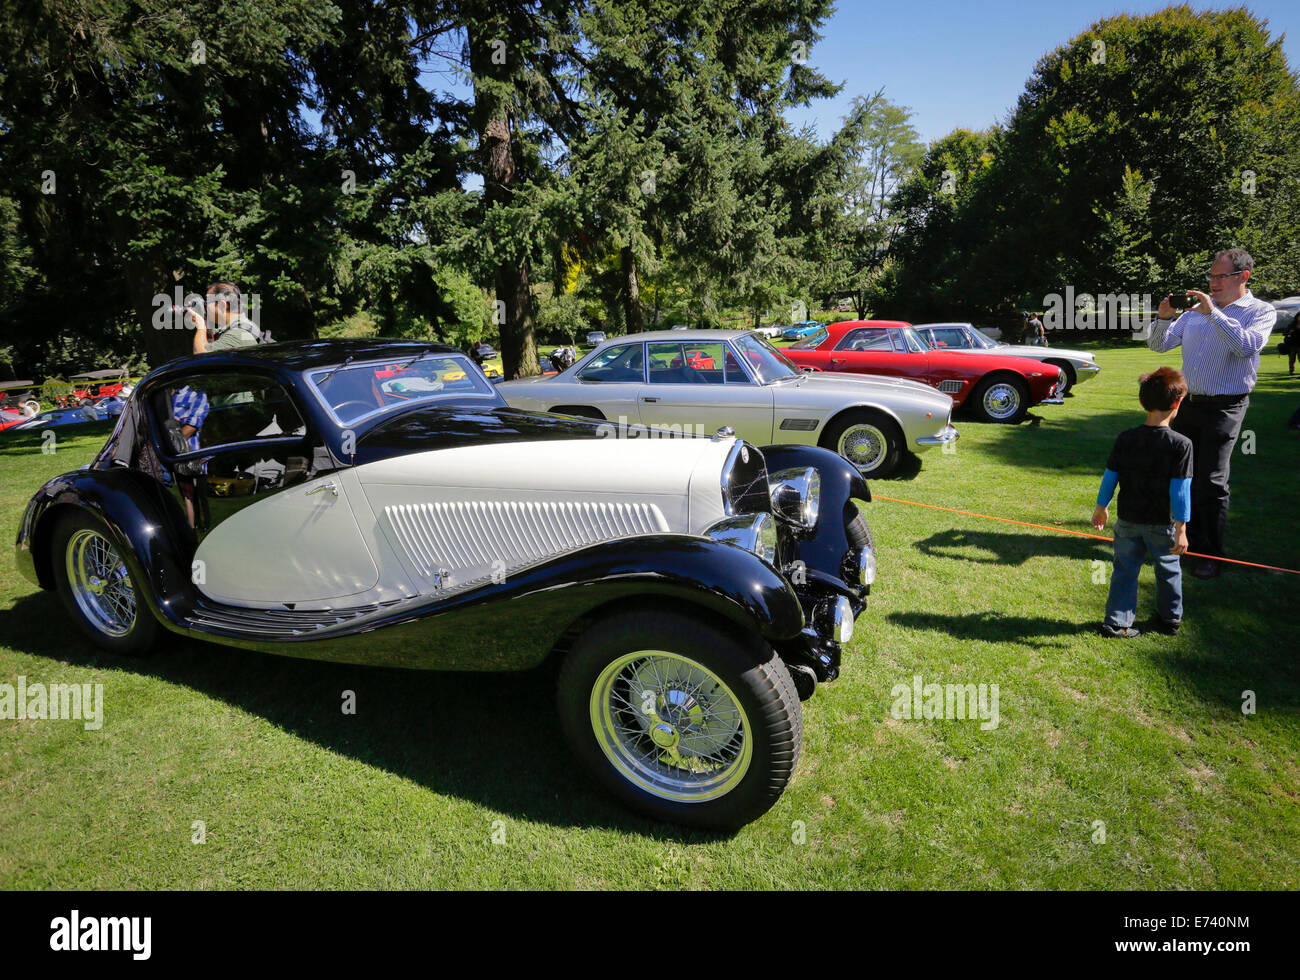 Vancouver, Canada. 5th Sep, 2014. Different types of vintage cars ...